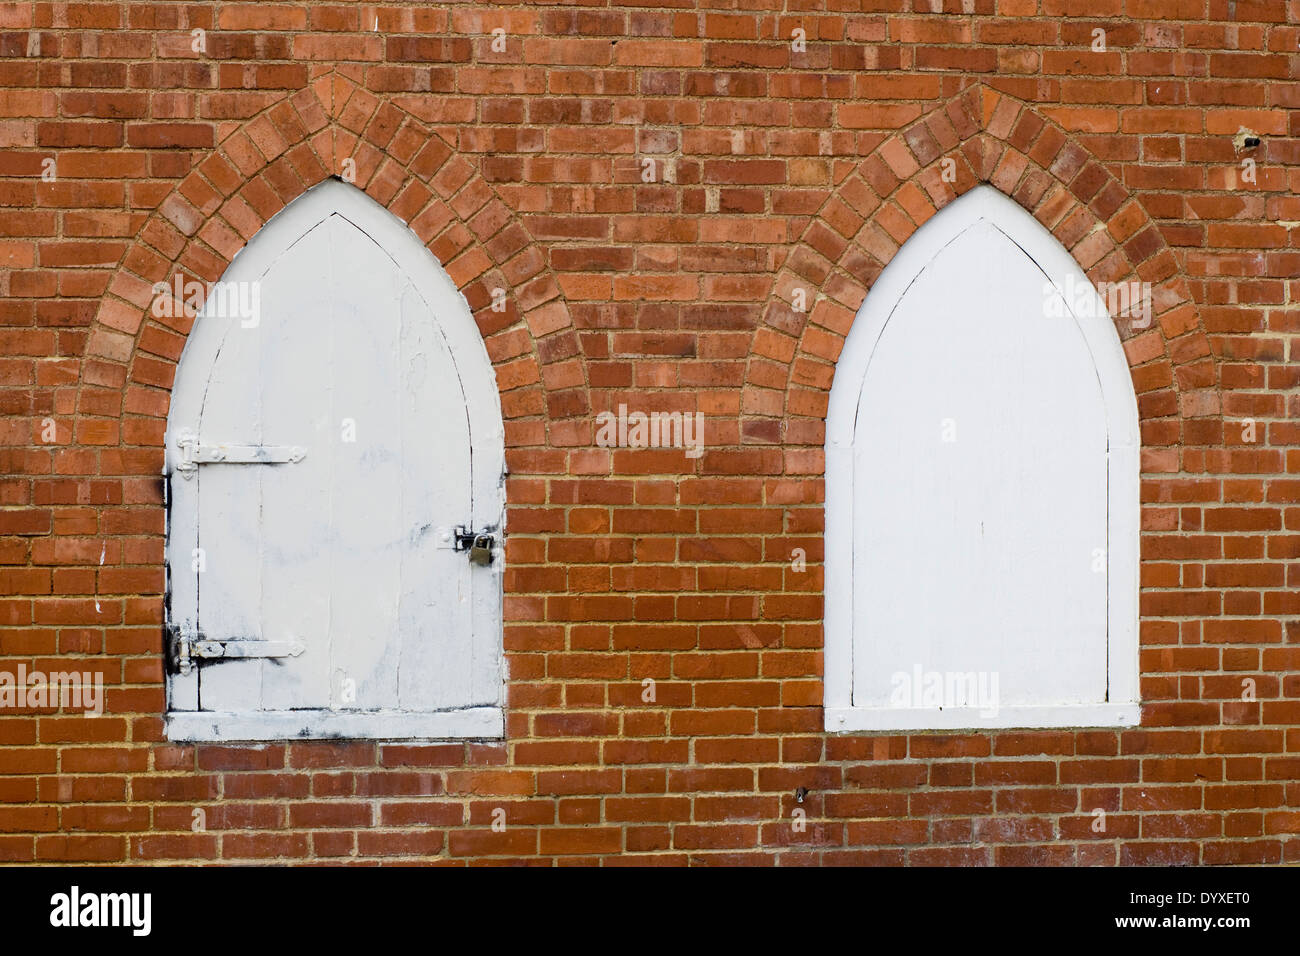 Two White Arched doors on a red brick wall - Stock Image